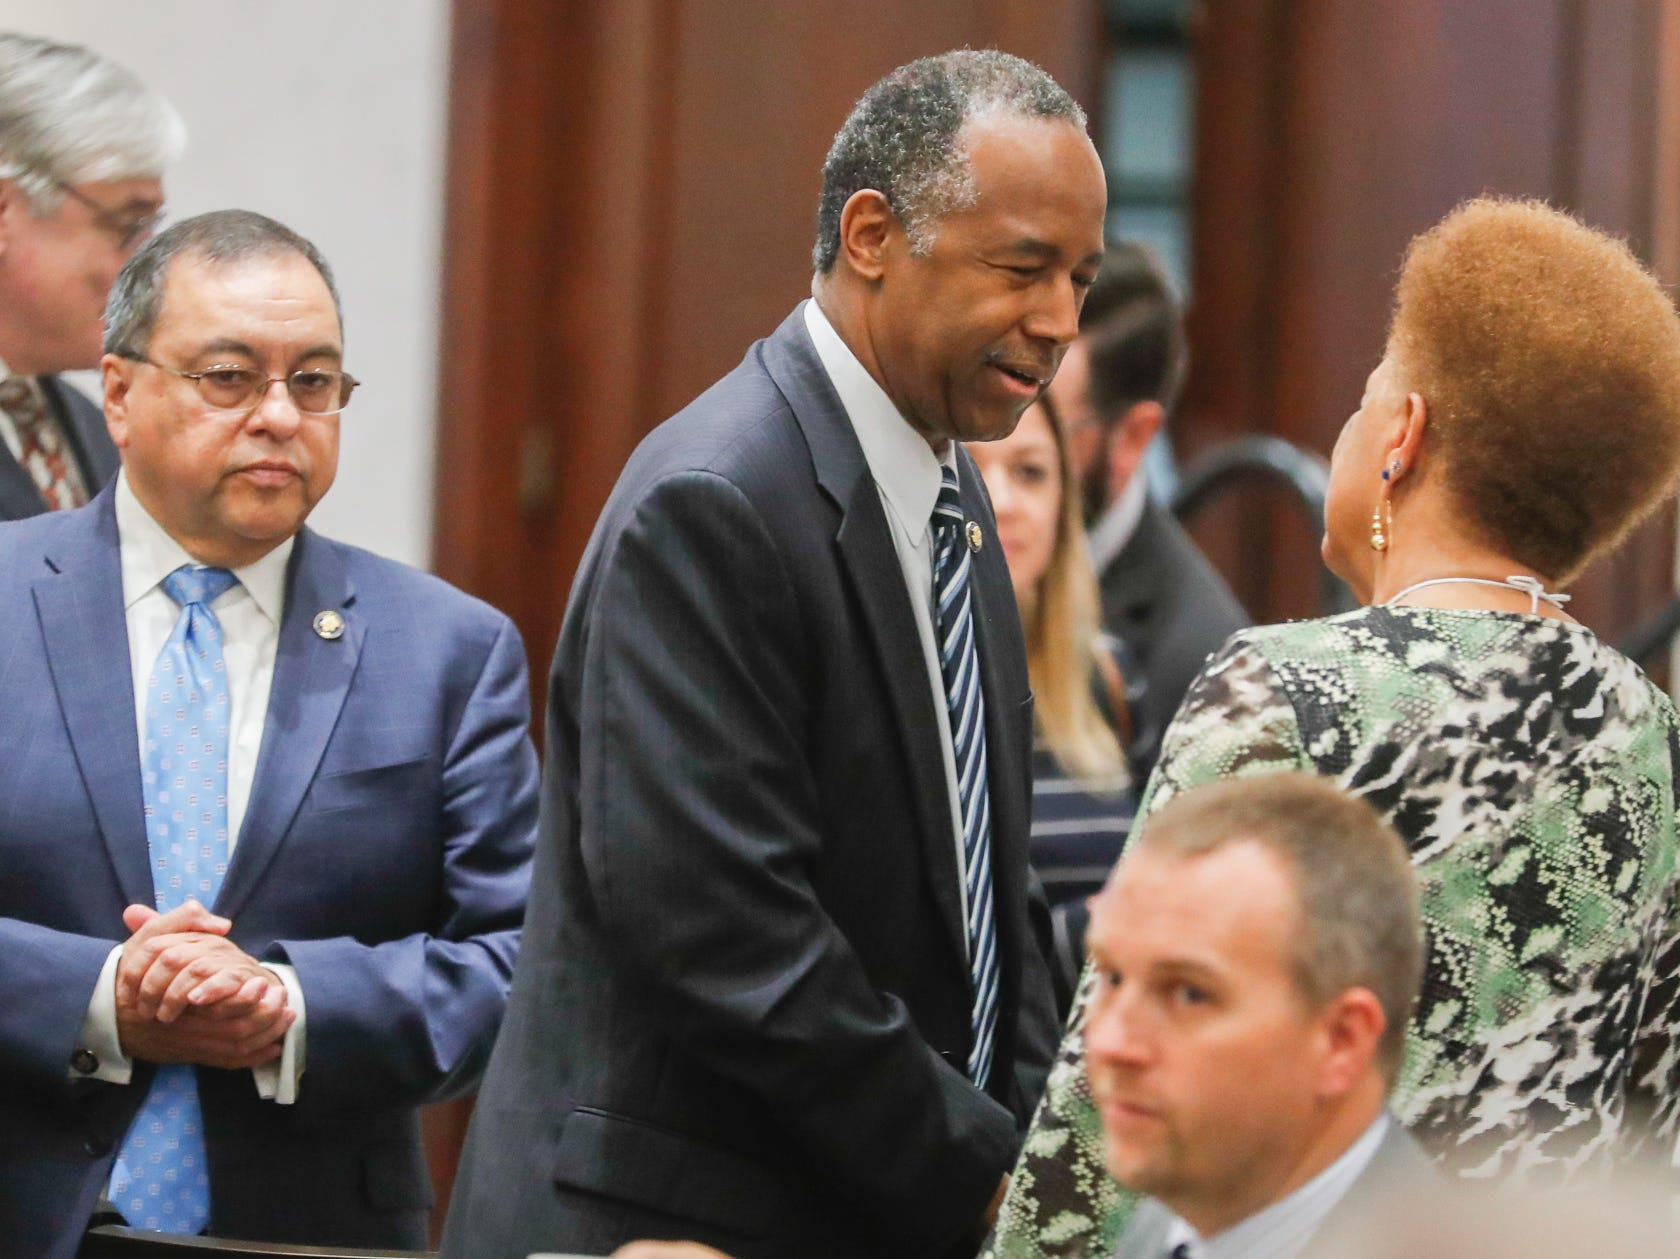 HUD Secretary Ben Carson, center, mixes and mingles before giving the Keynote speech during the Indiana Civil Rights CommissionÕs Fair Housing Law and Policy Conference, held at the     Sheraton Indianapolis City Centre Hotel on Wednesday, Oct. 10, 2018.